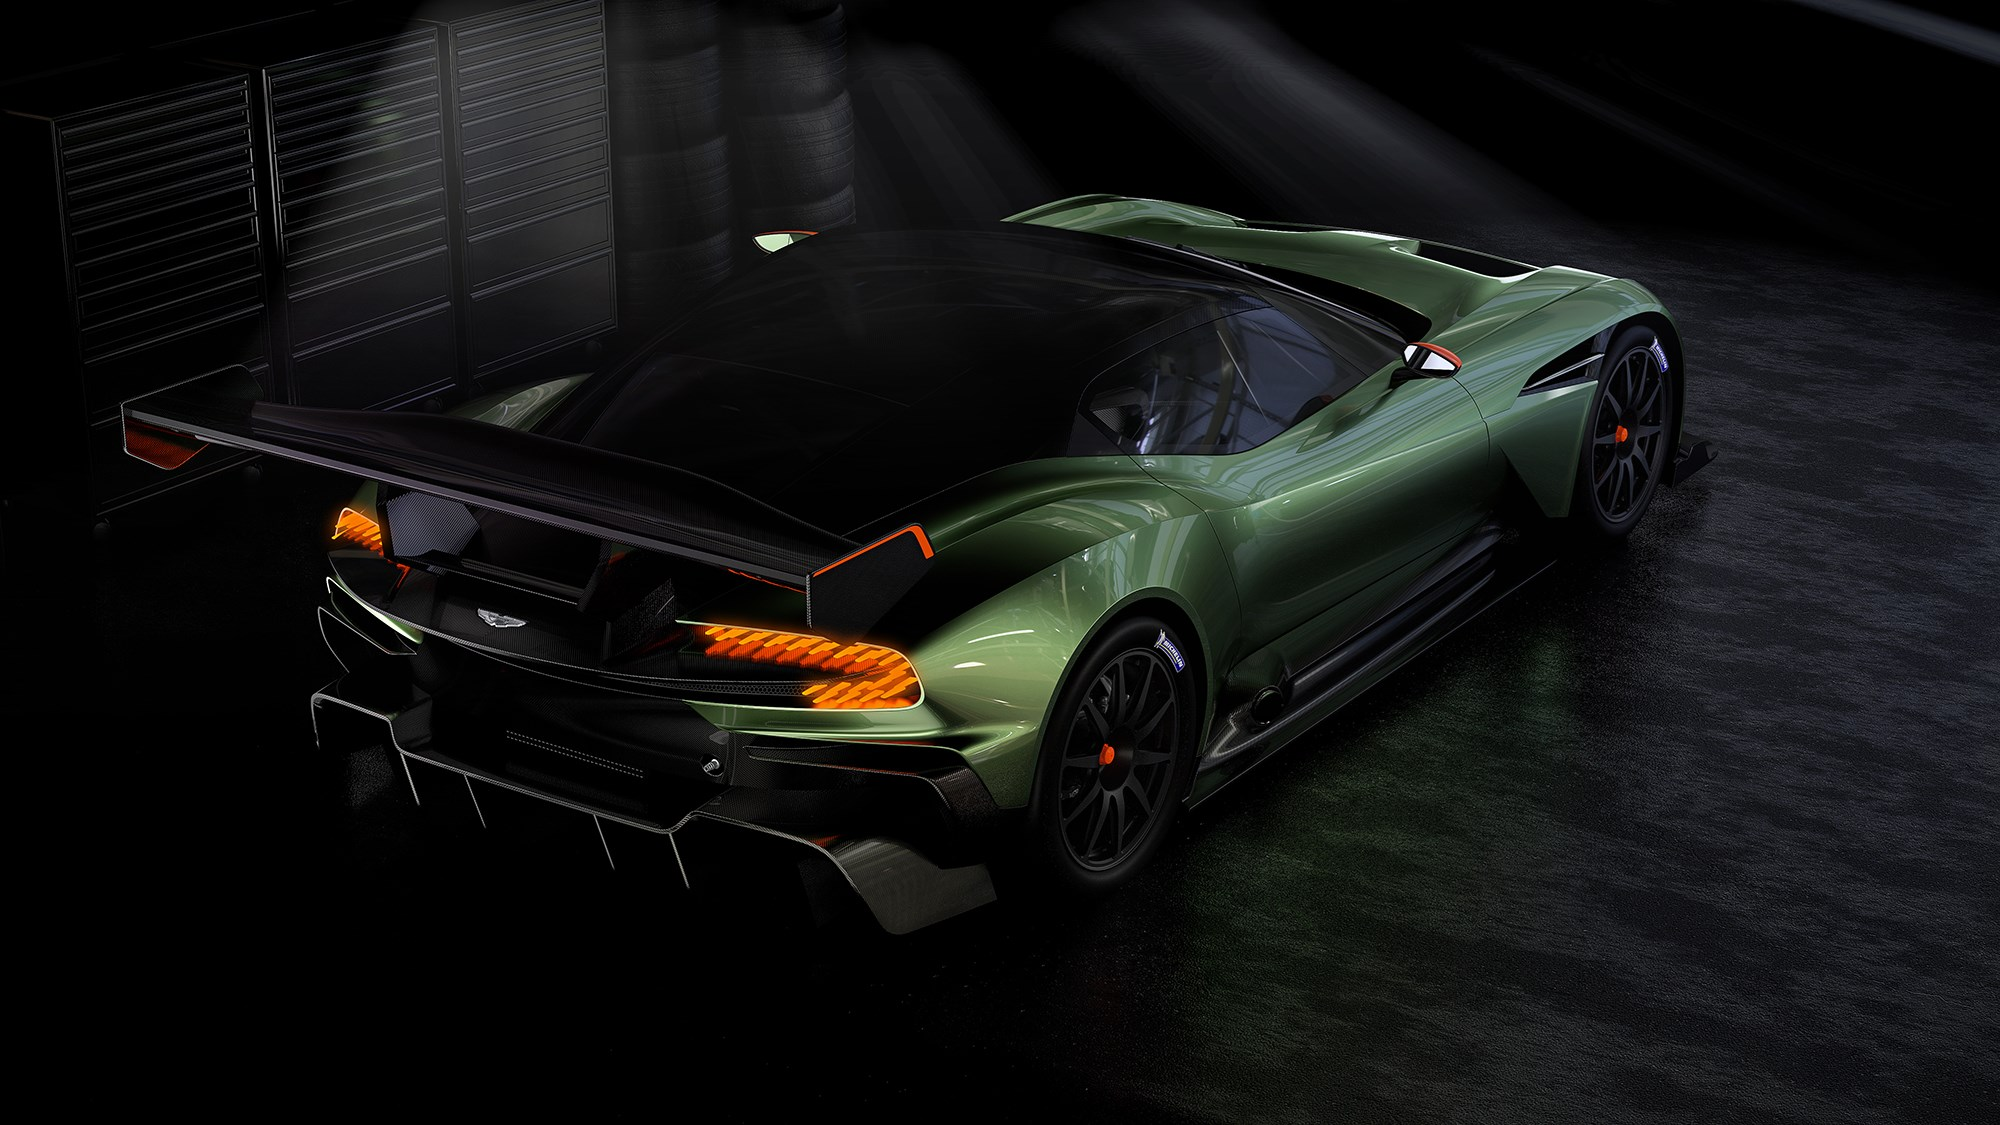 aston martin vulcan unveiled: 24 extreme track-day cars for £1.8m